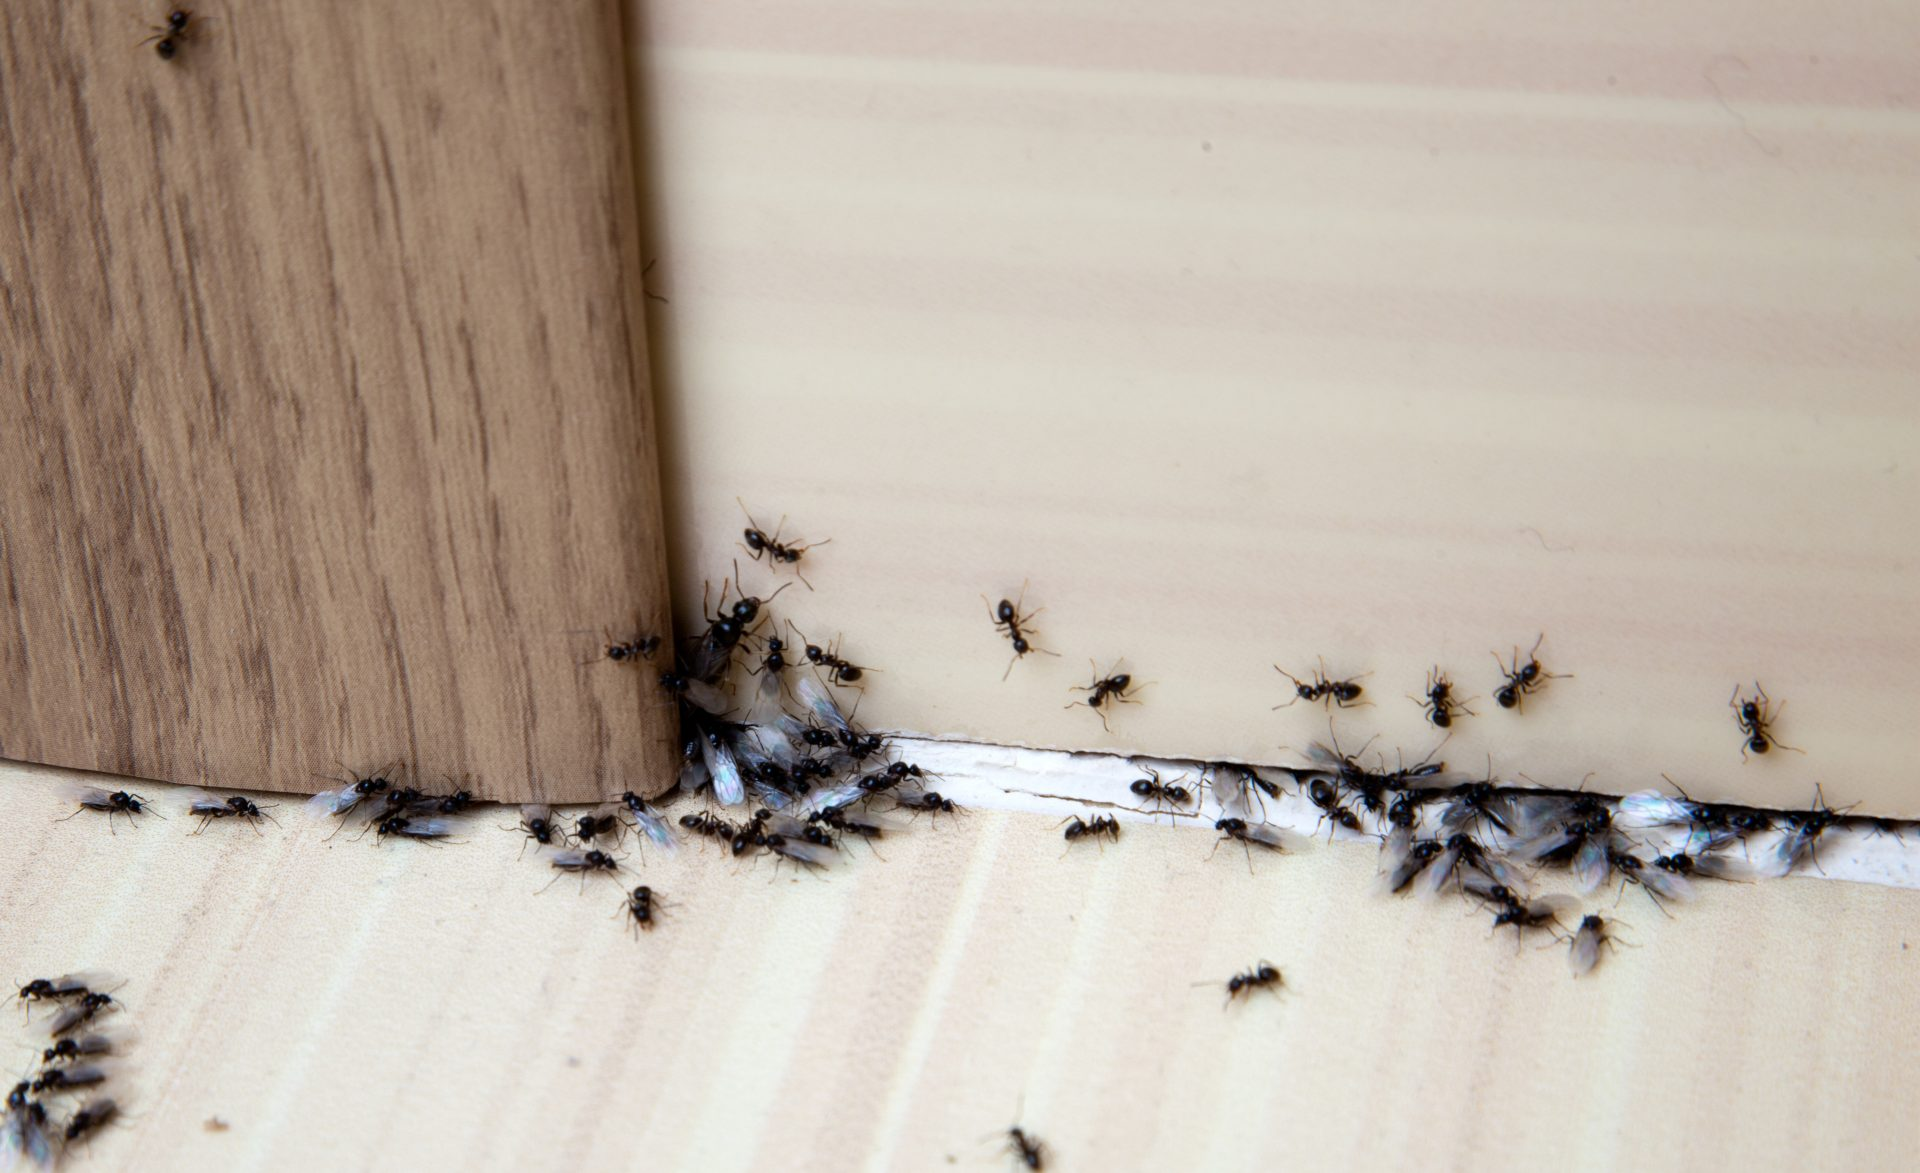 pest control services in Baltimore -- Raven Termite and Pest Control